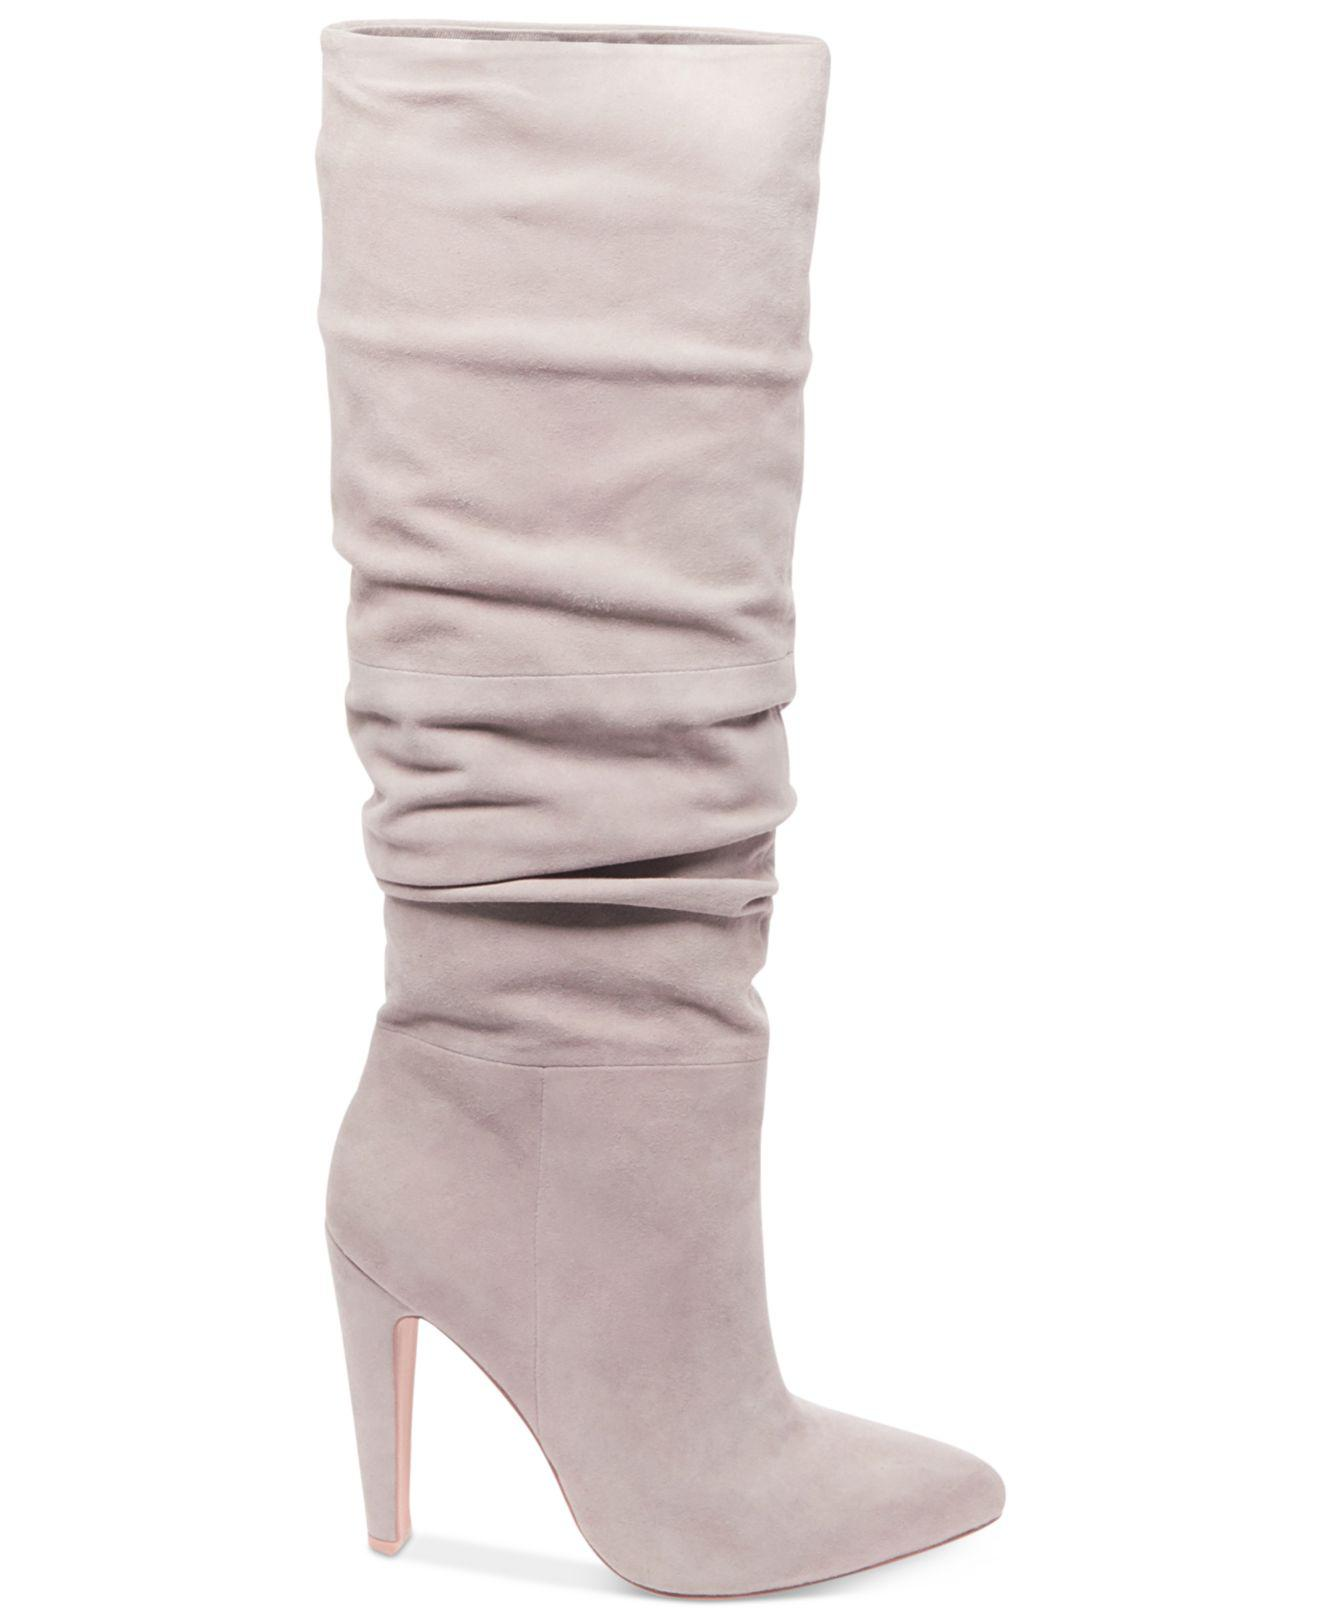 c7c10640c2a Lyst - Steve Madden Women's Carrie Slouchy Boots in Gray